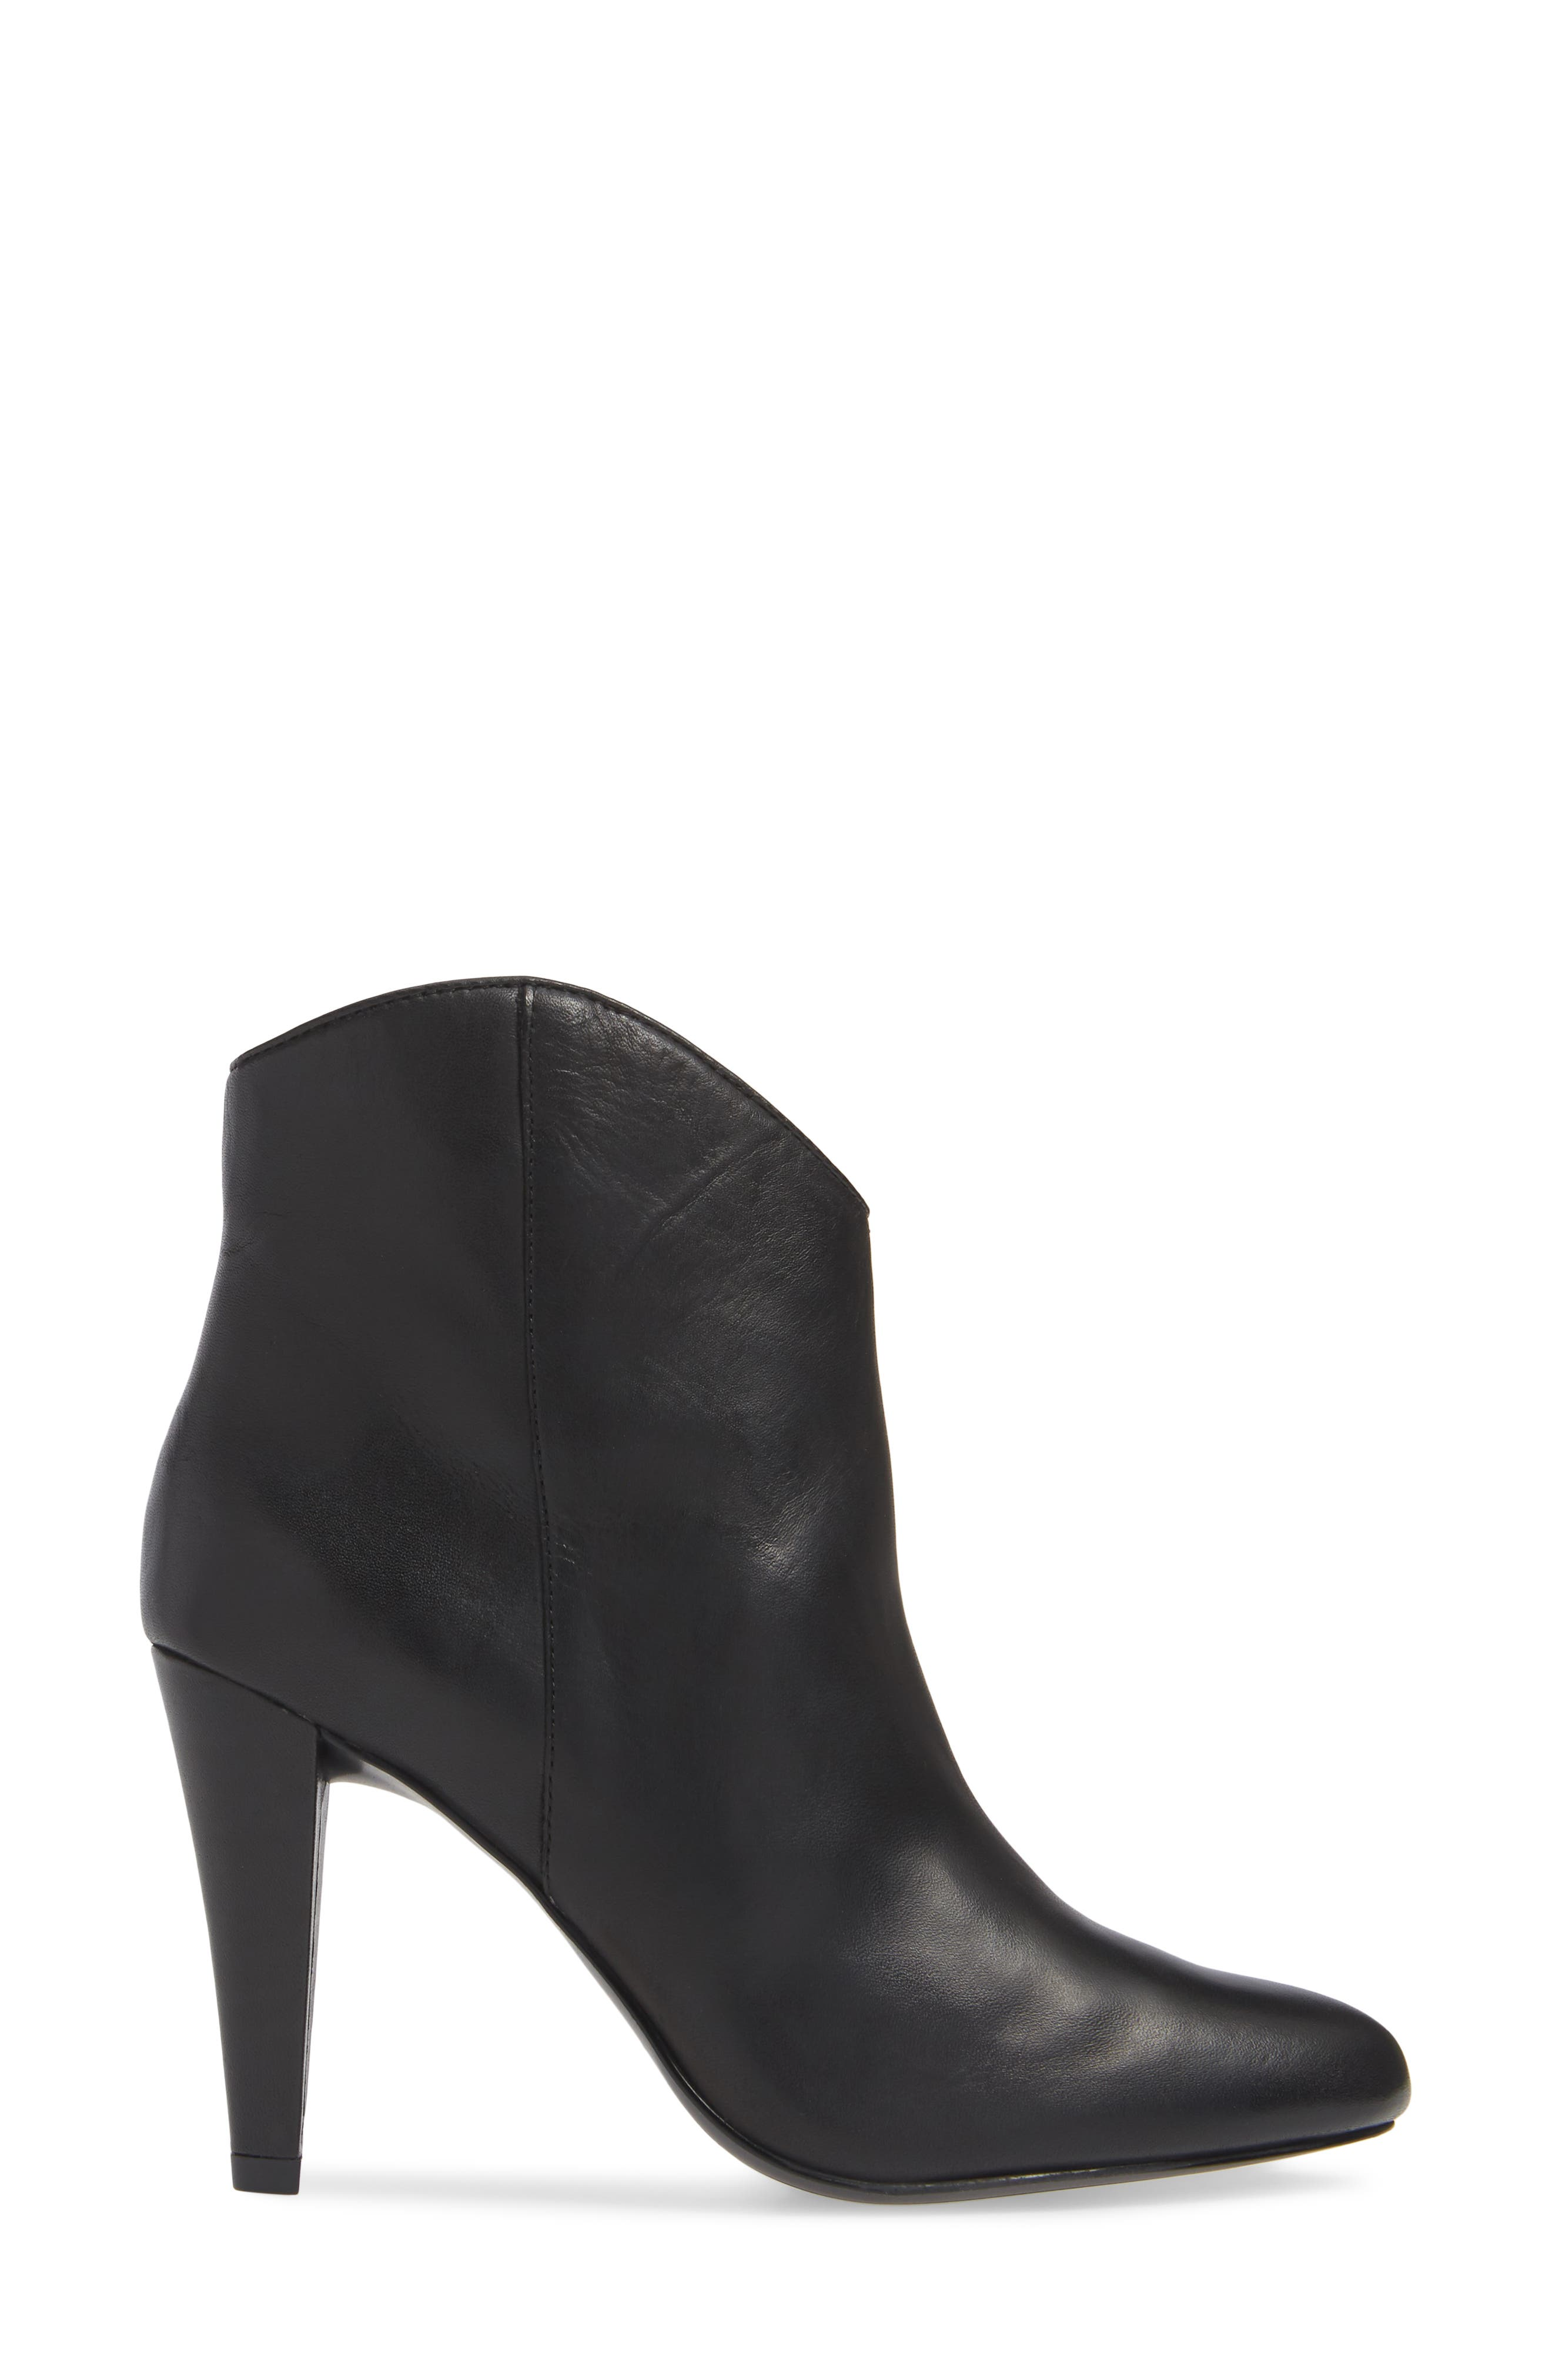 Makayla Bootie,                             Alternate thumbnail 3, color,                             BLACK LEATHER